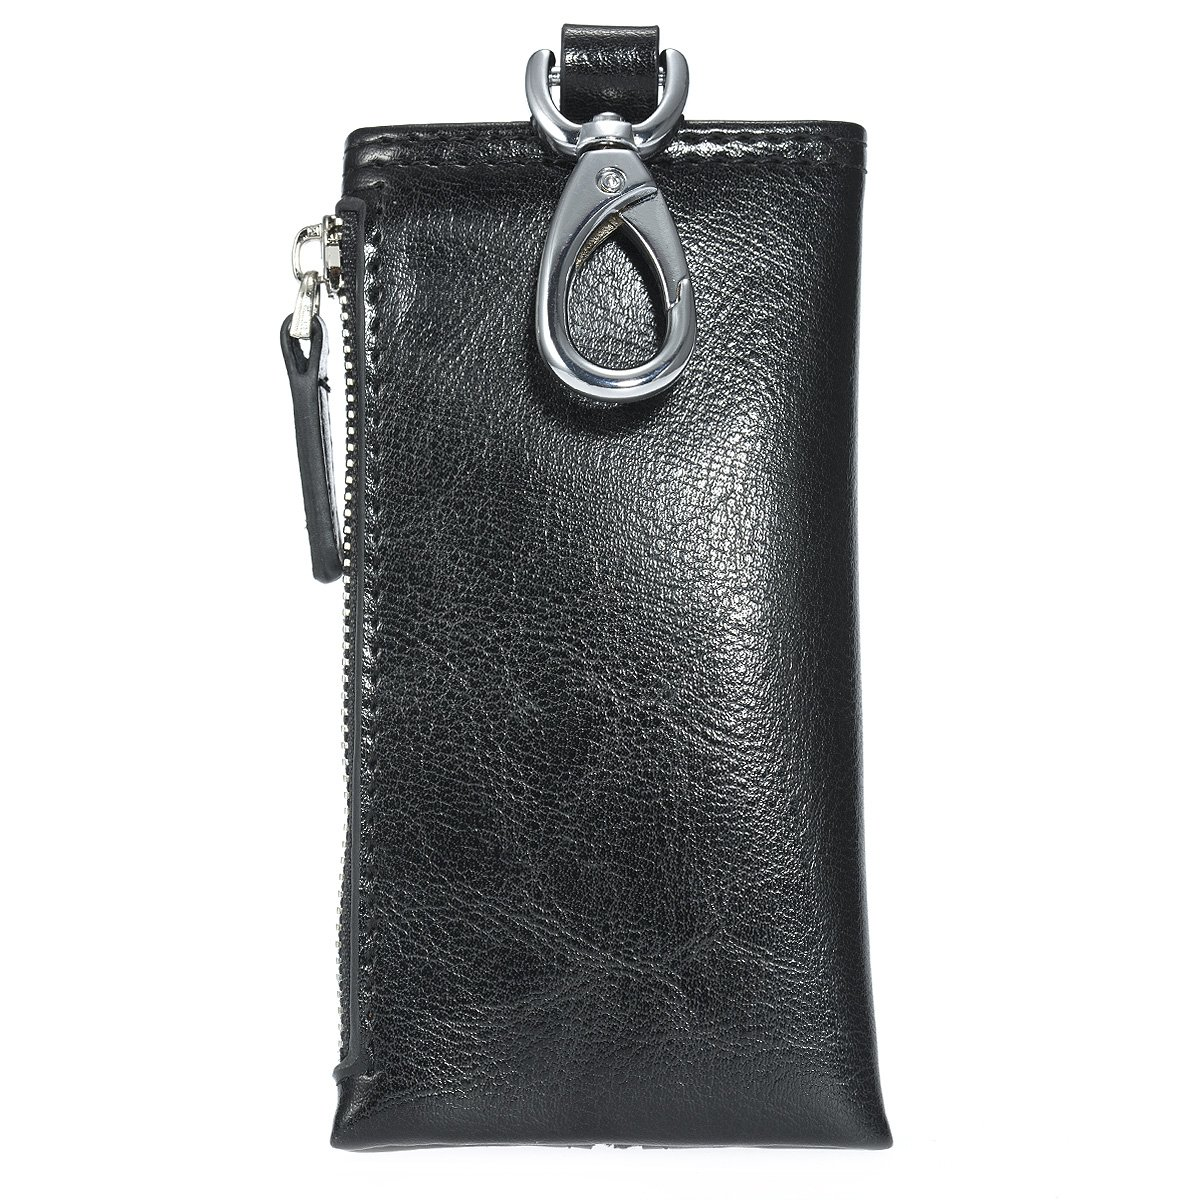 00d4d39fe57d5 Amazon.com  ManChDa Leather Key Wallets Unisex Keychain Key Holder Ring 6  Hooks Snap Closure  Clothing